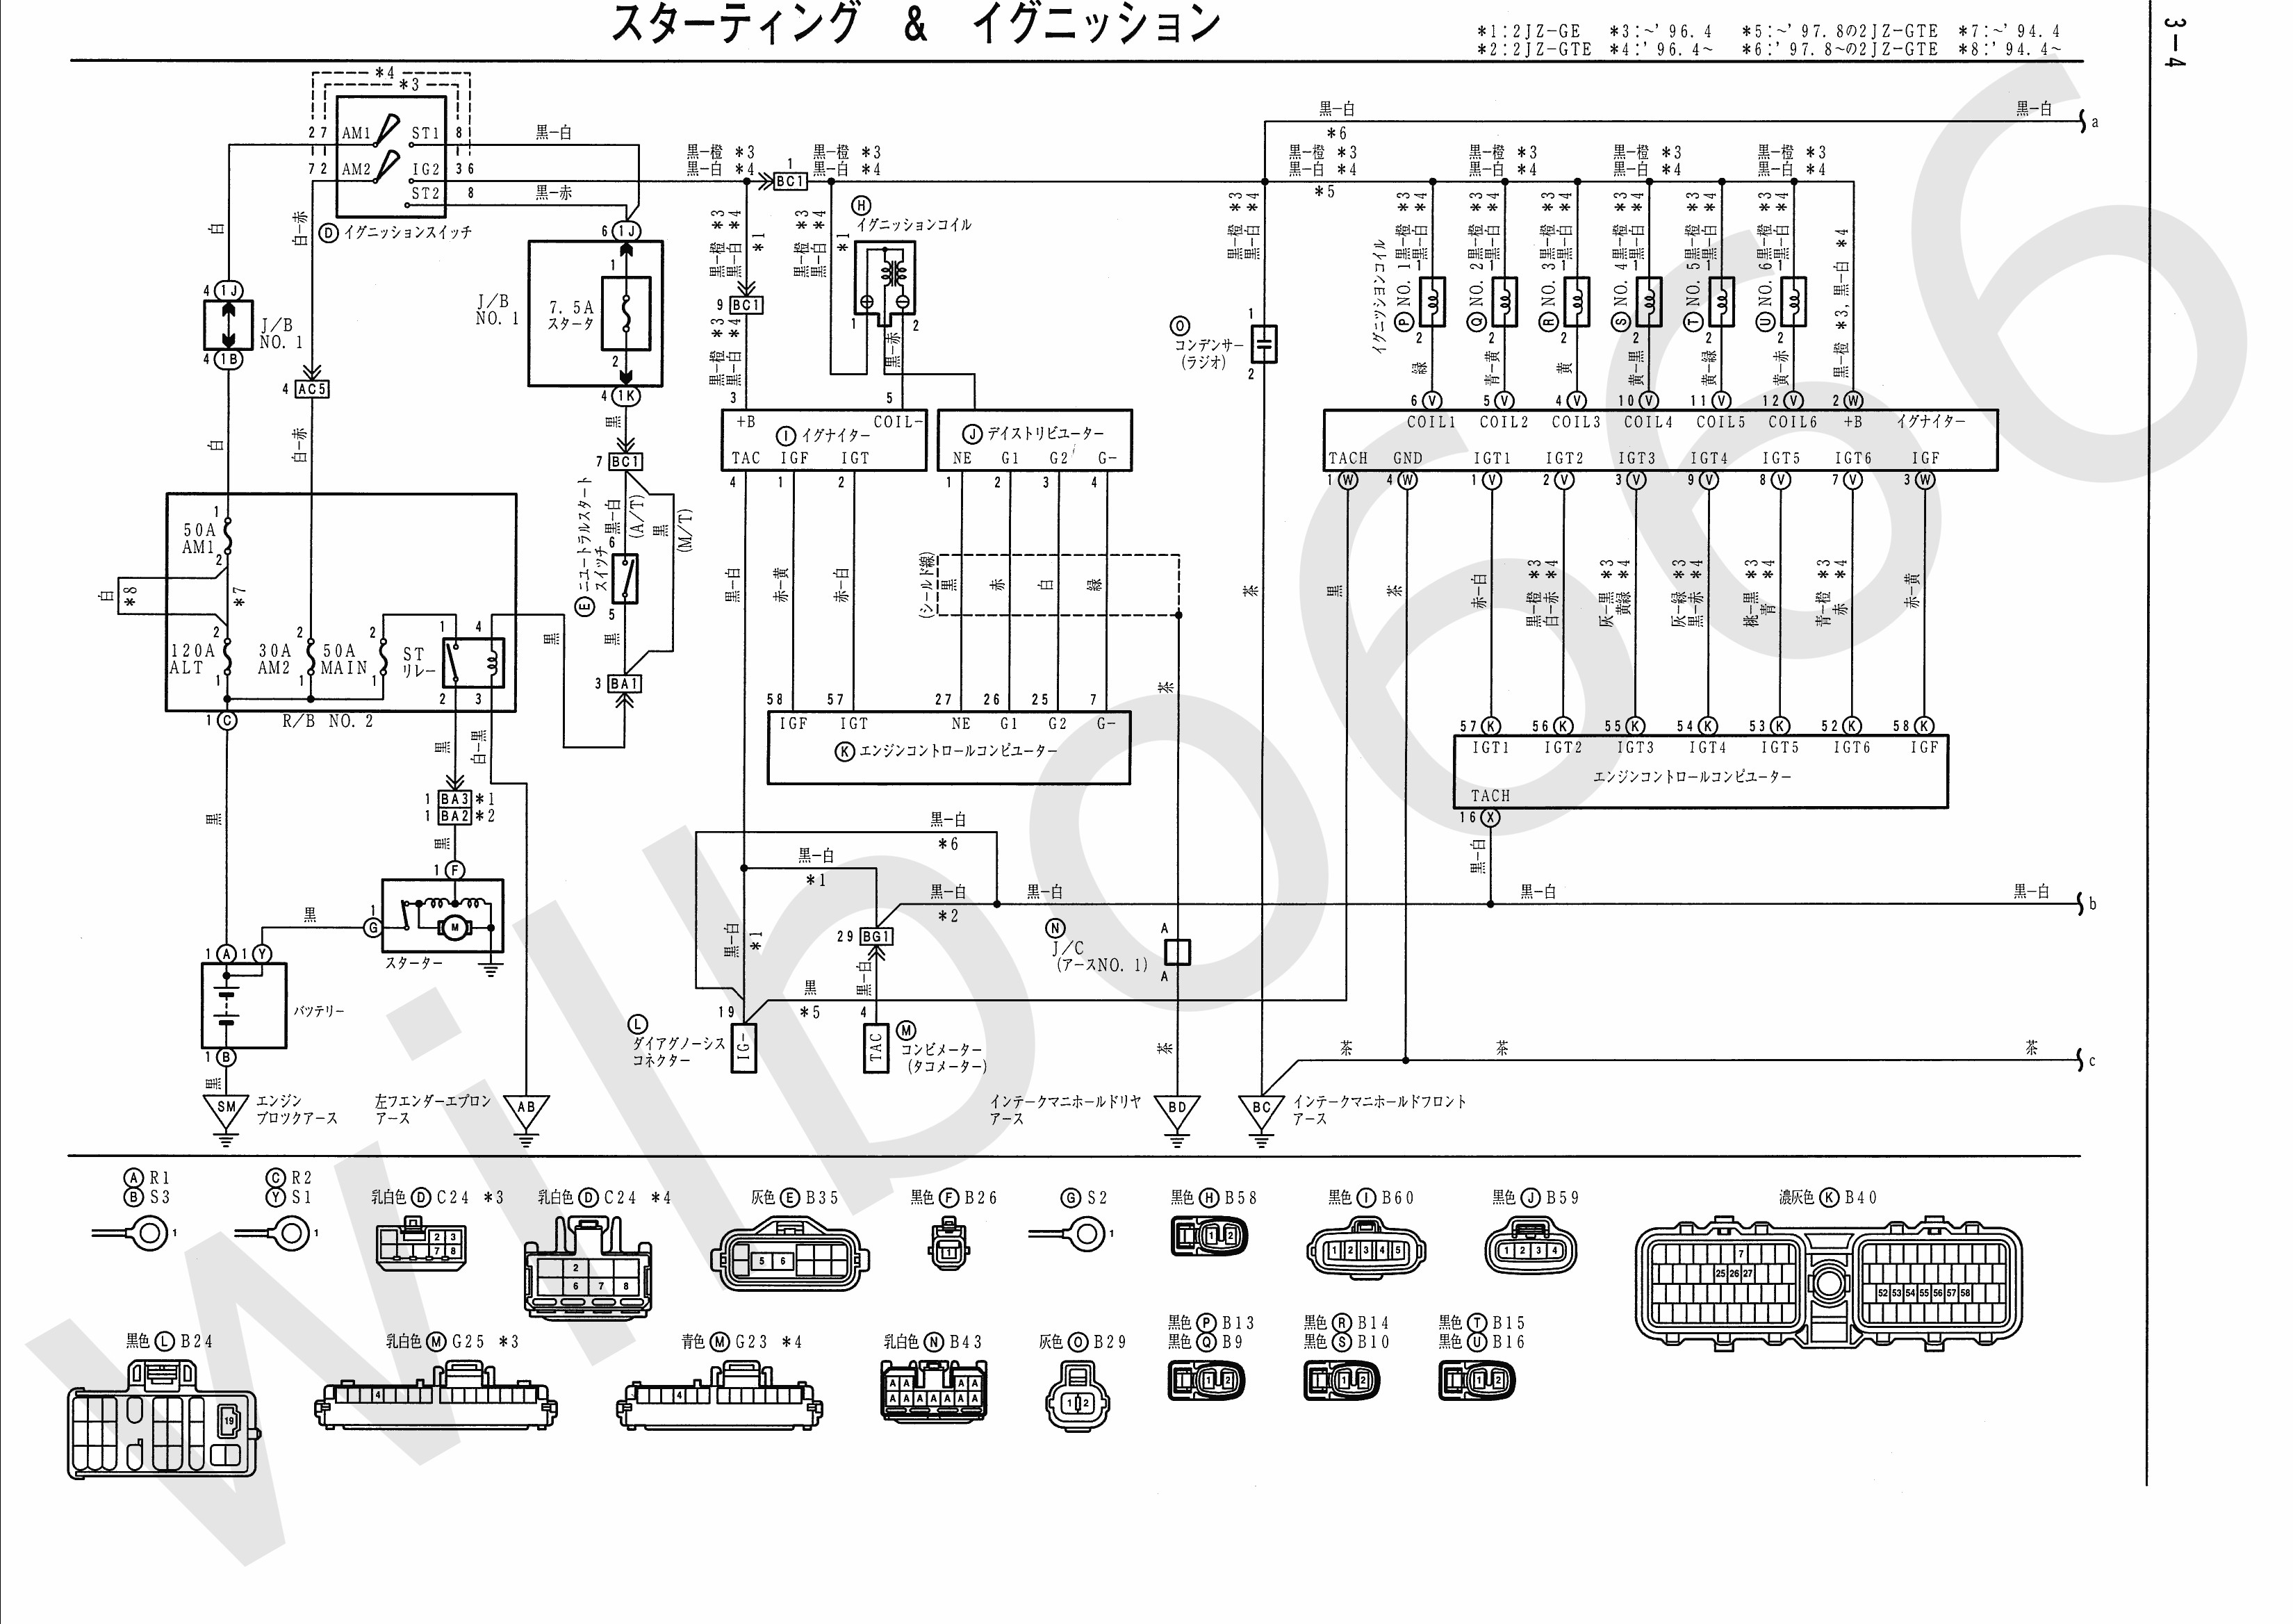 Toyota Rav4 Engine Diagram 1jz Series Ecu Wiring Harness Wiring Info • Of Toyota Rav4 Engine Diagram